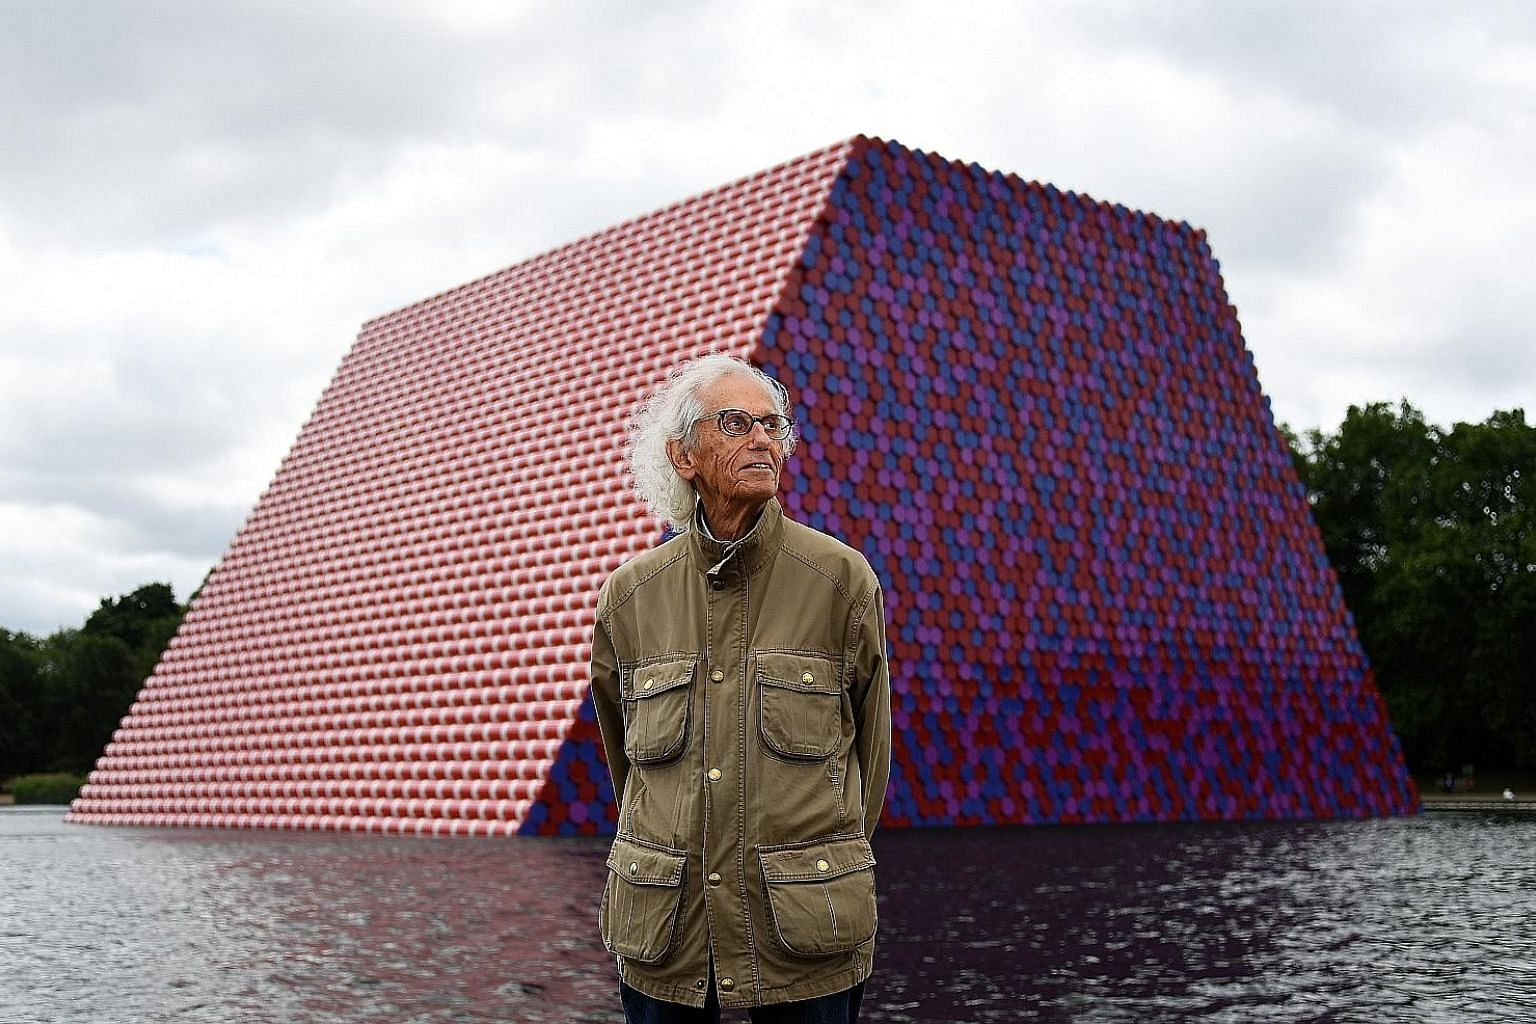 The London Mastaba by Christo (right) weighs 600 tonnes, is 20m high, 30m wide and 40m long.